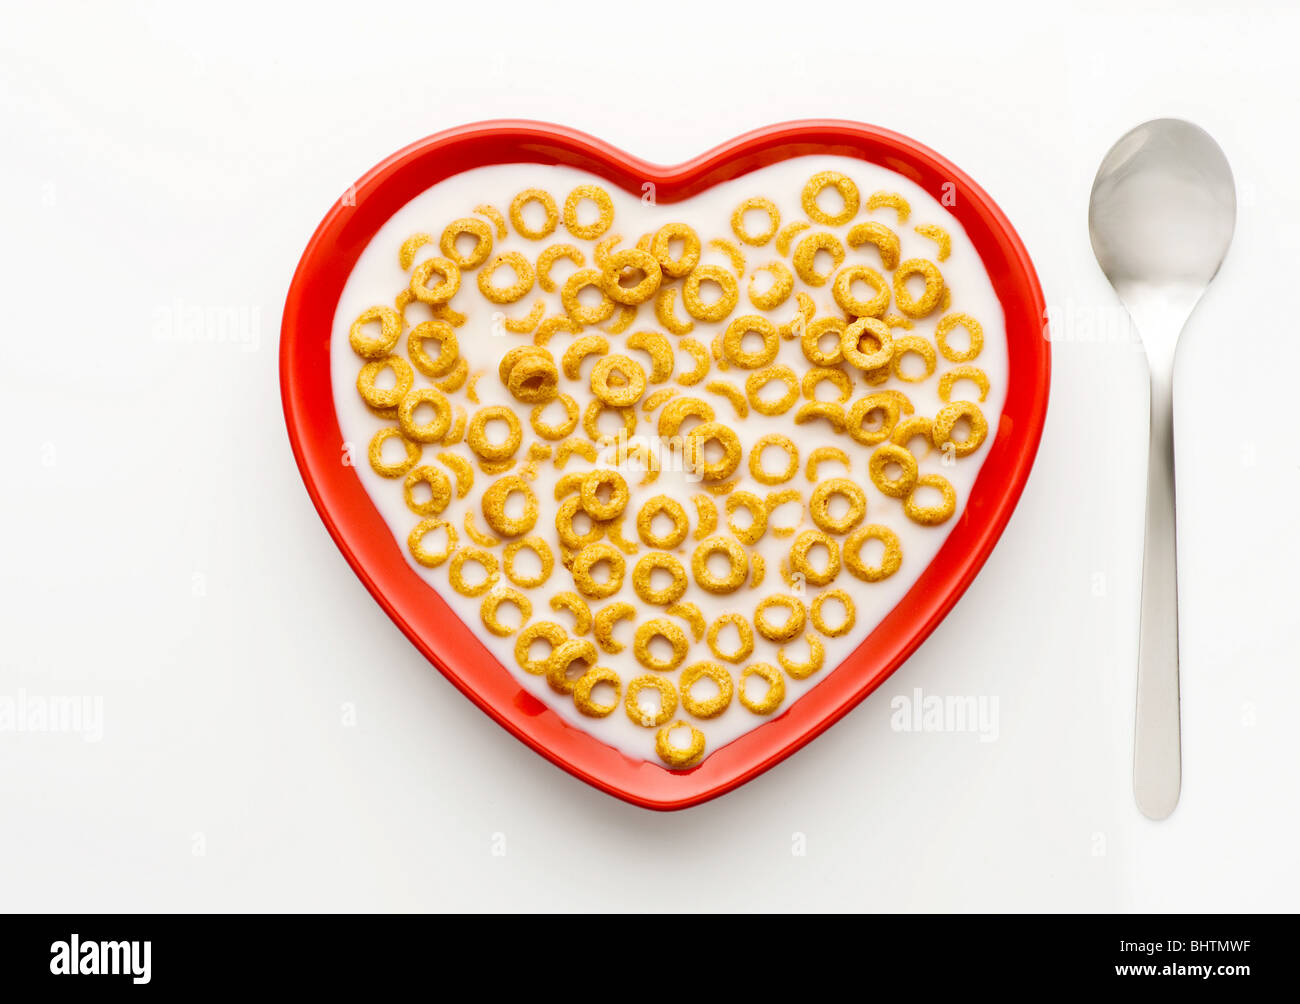 Studio shot of red heart shaped bowl of honey nut loops and milk with a spoon,on a white background, shot from above. - Stock Image